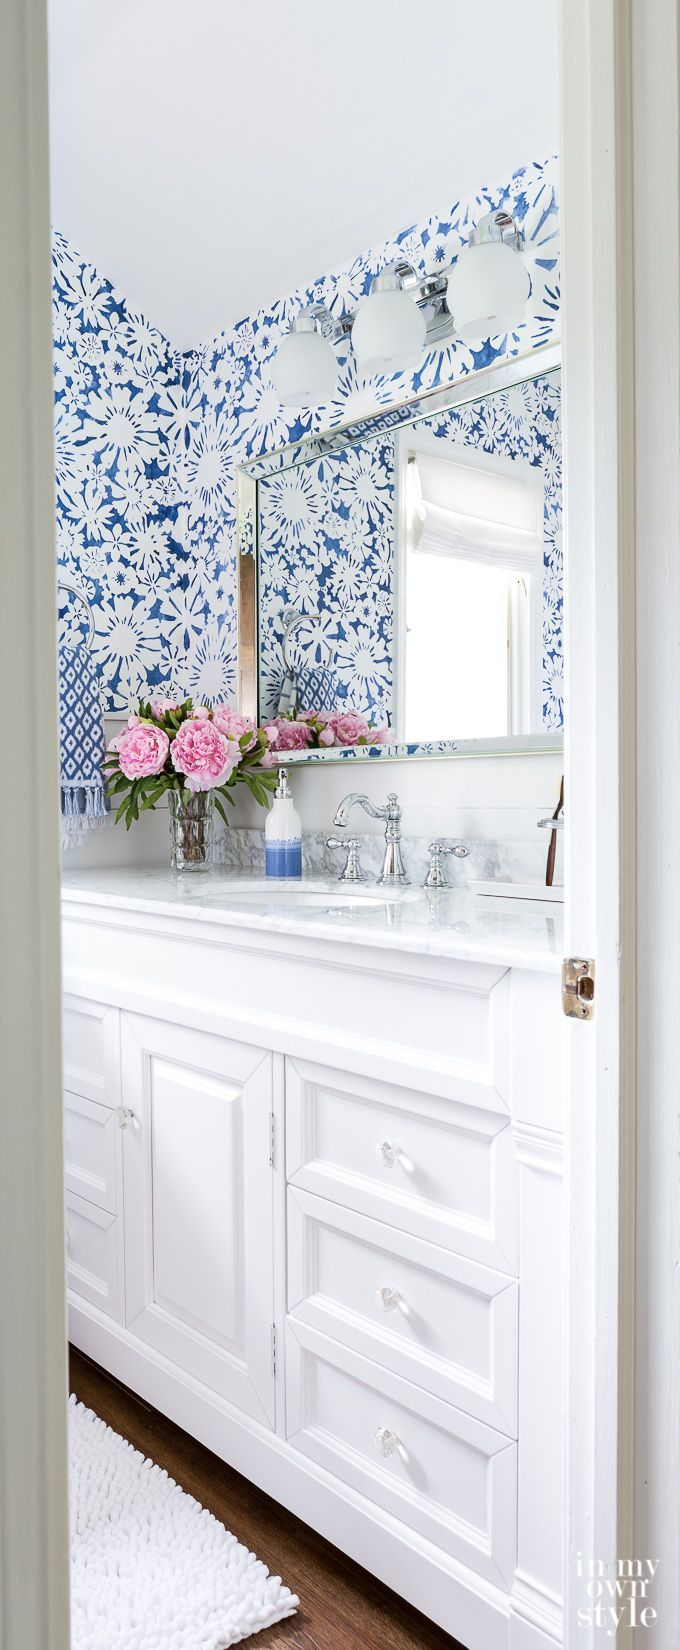 Blue and white DIY stenciled bathroom makeover, perfect for color ...